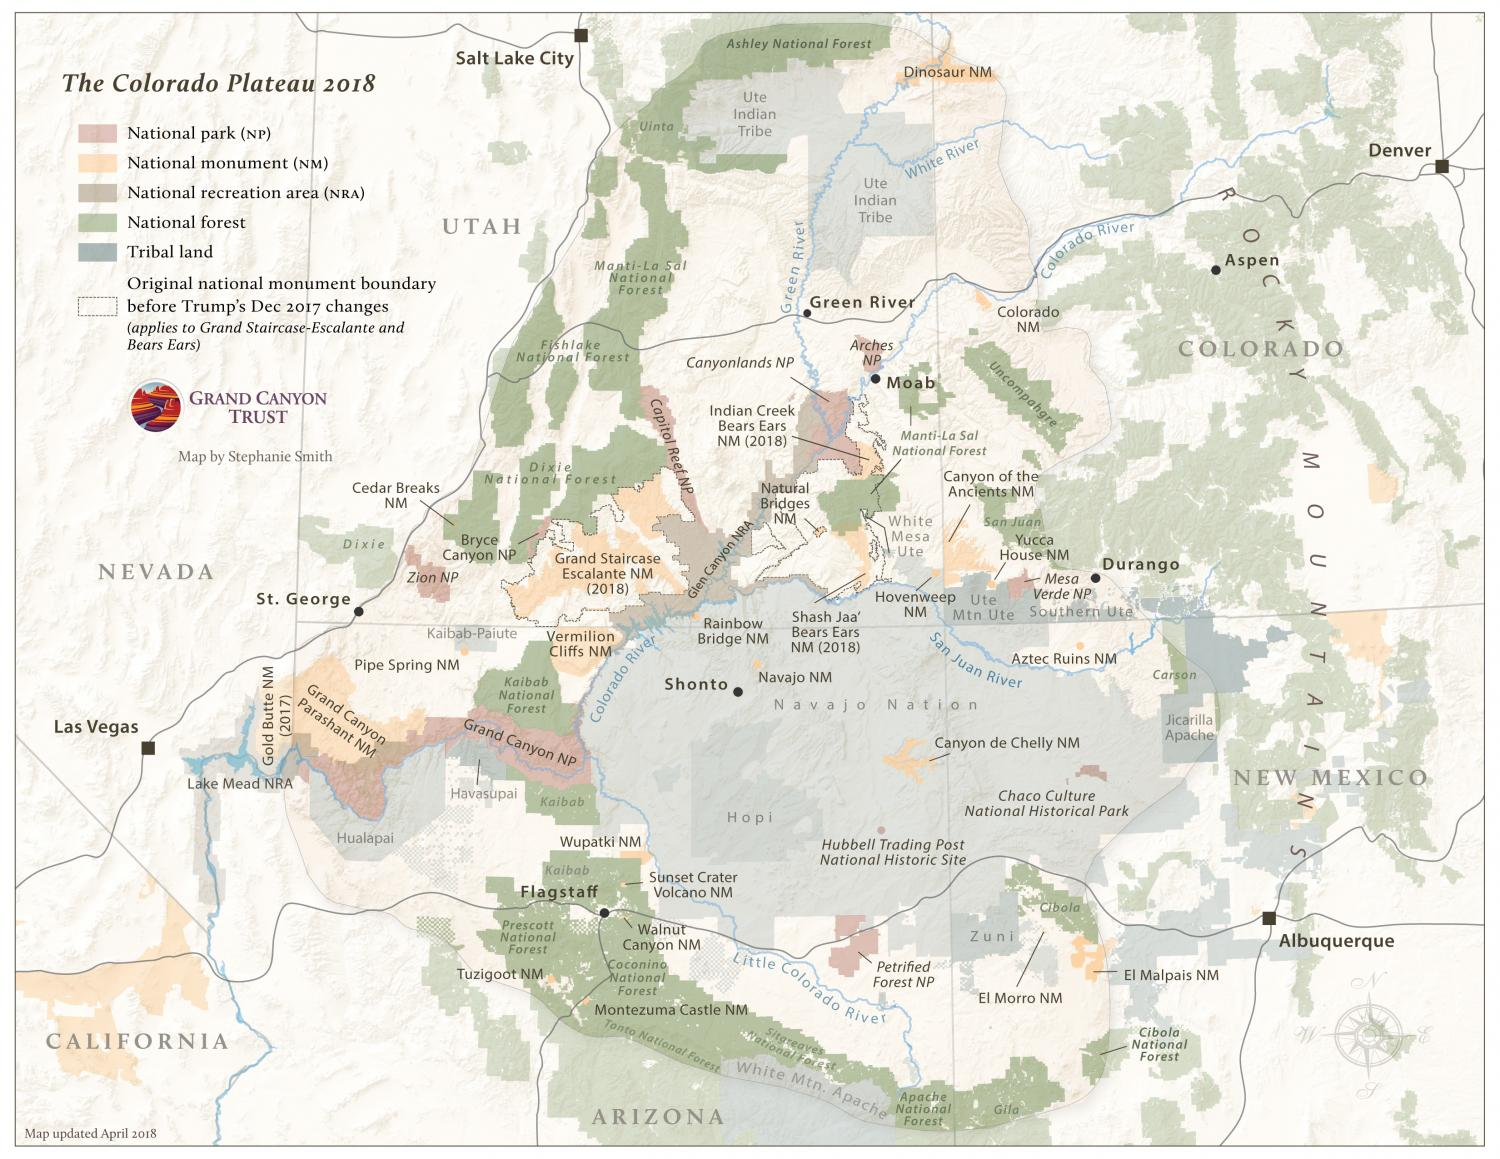 Colorado Plateau map, 2018 edition.